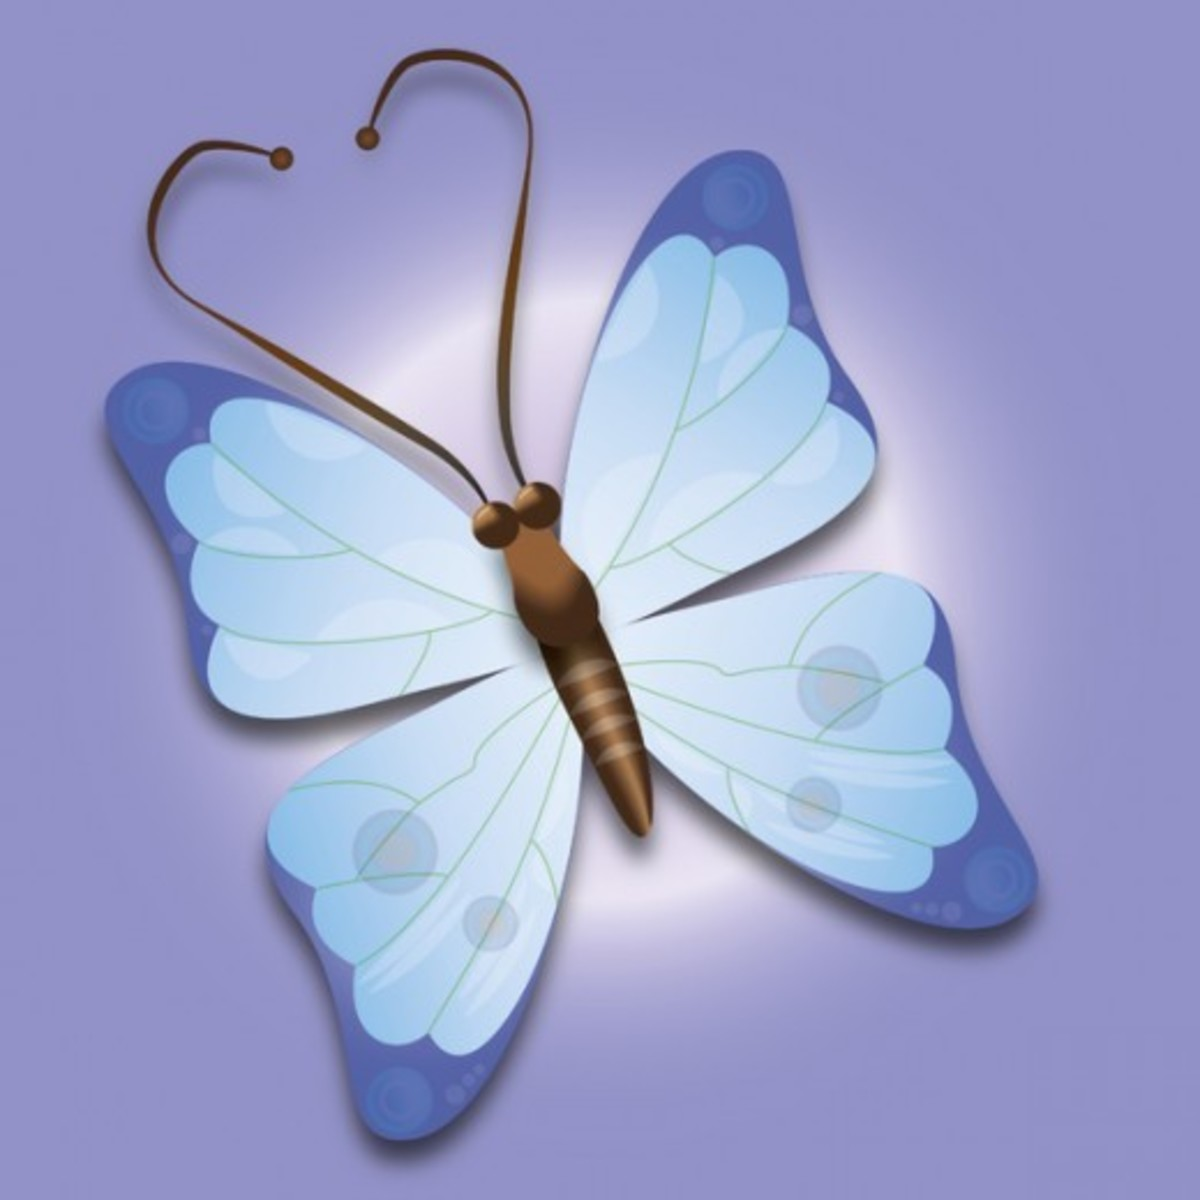 Blue Butterfly on Purple Background